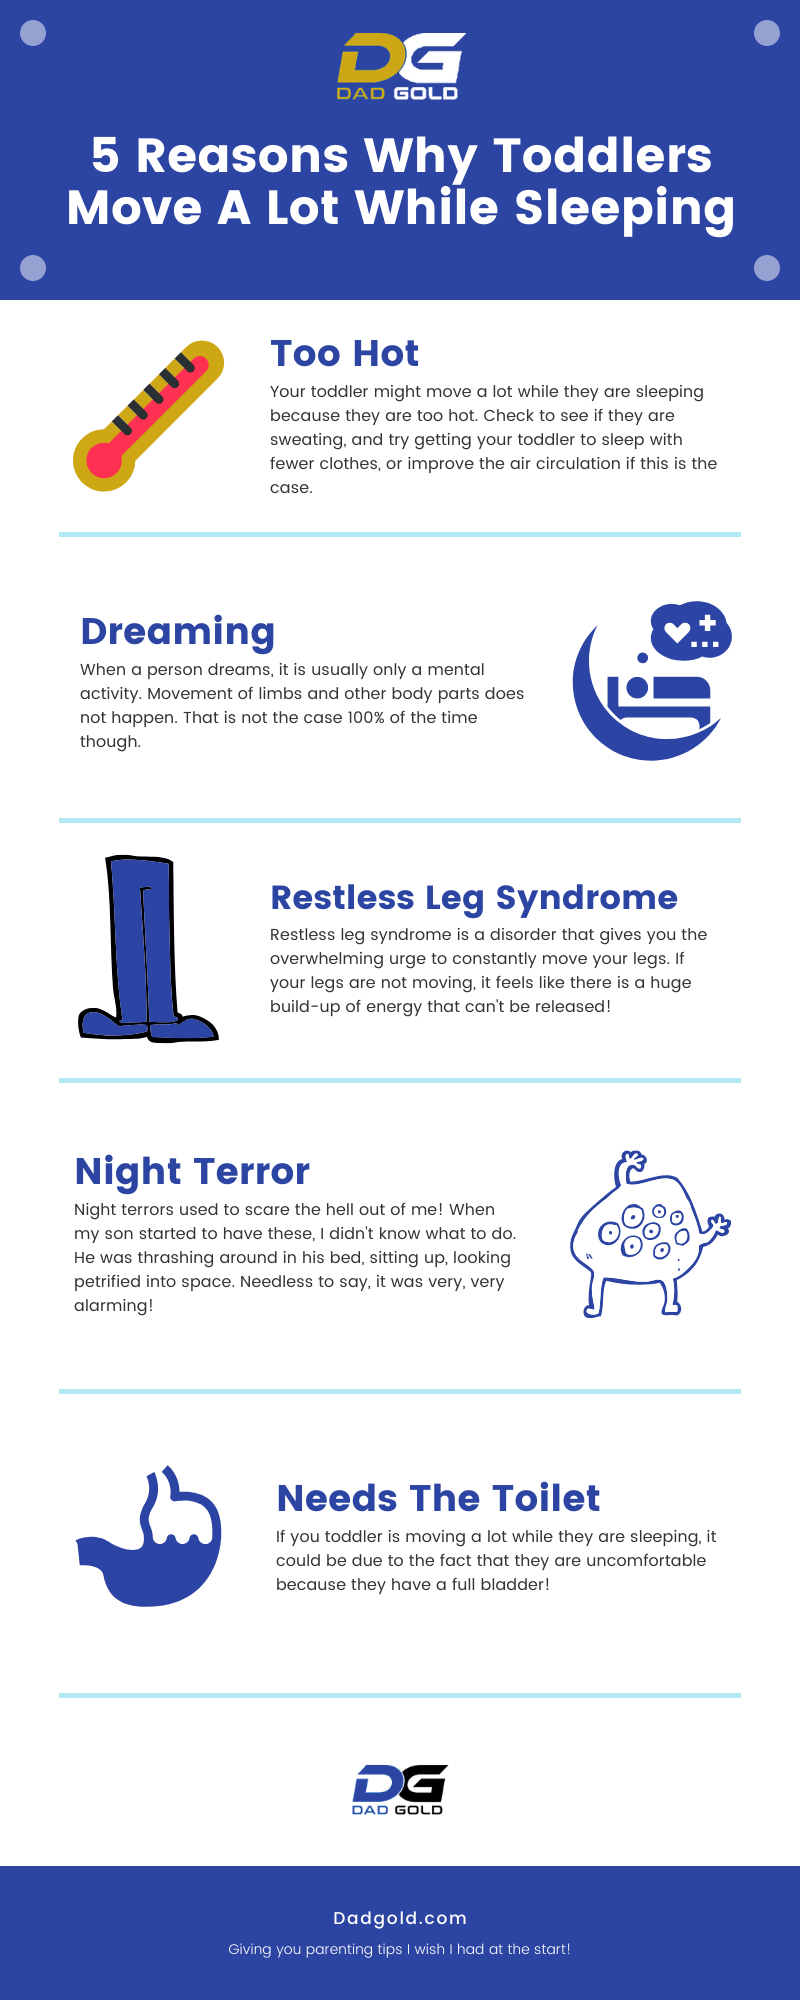 5 Reasons Why Toddlers Move A Lot While Sleeping Infographic Why Do Toddlers Move A Lot While Sleeping